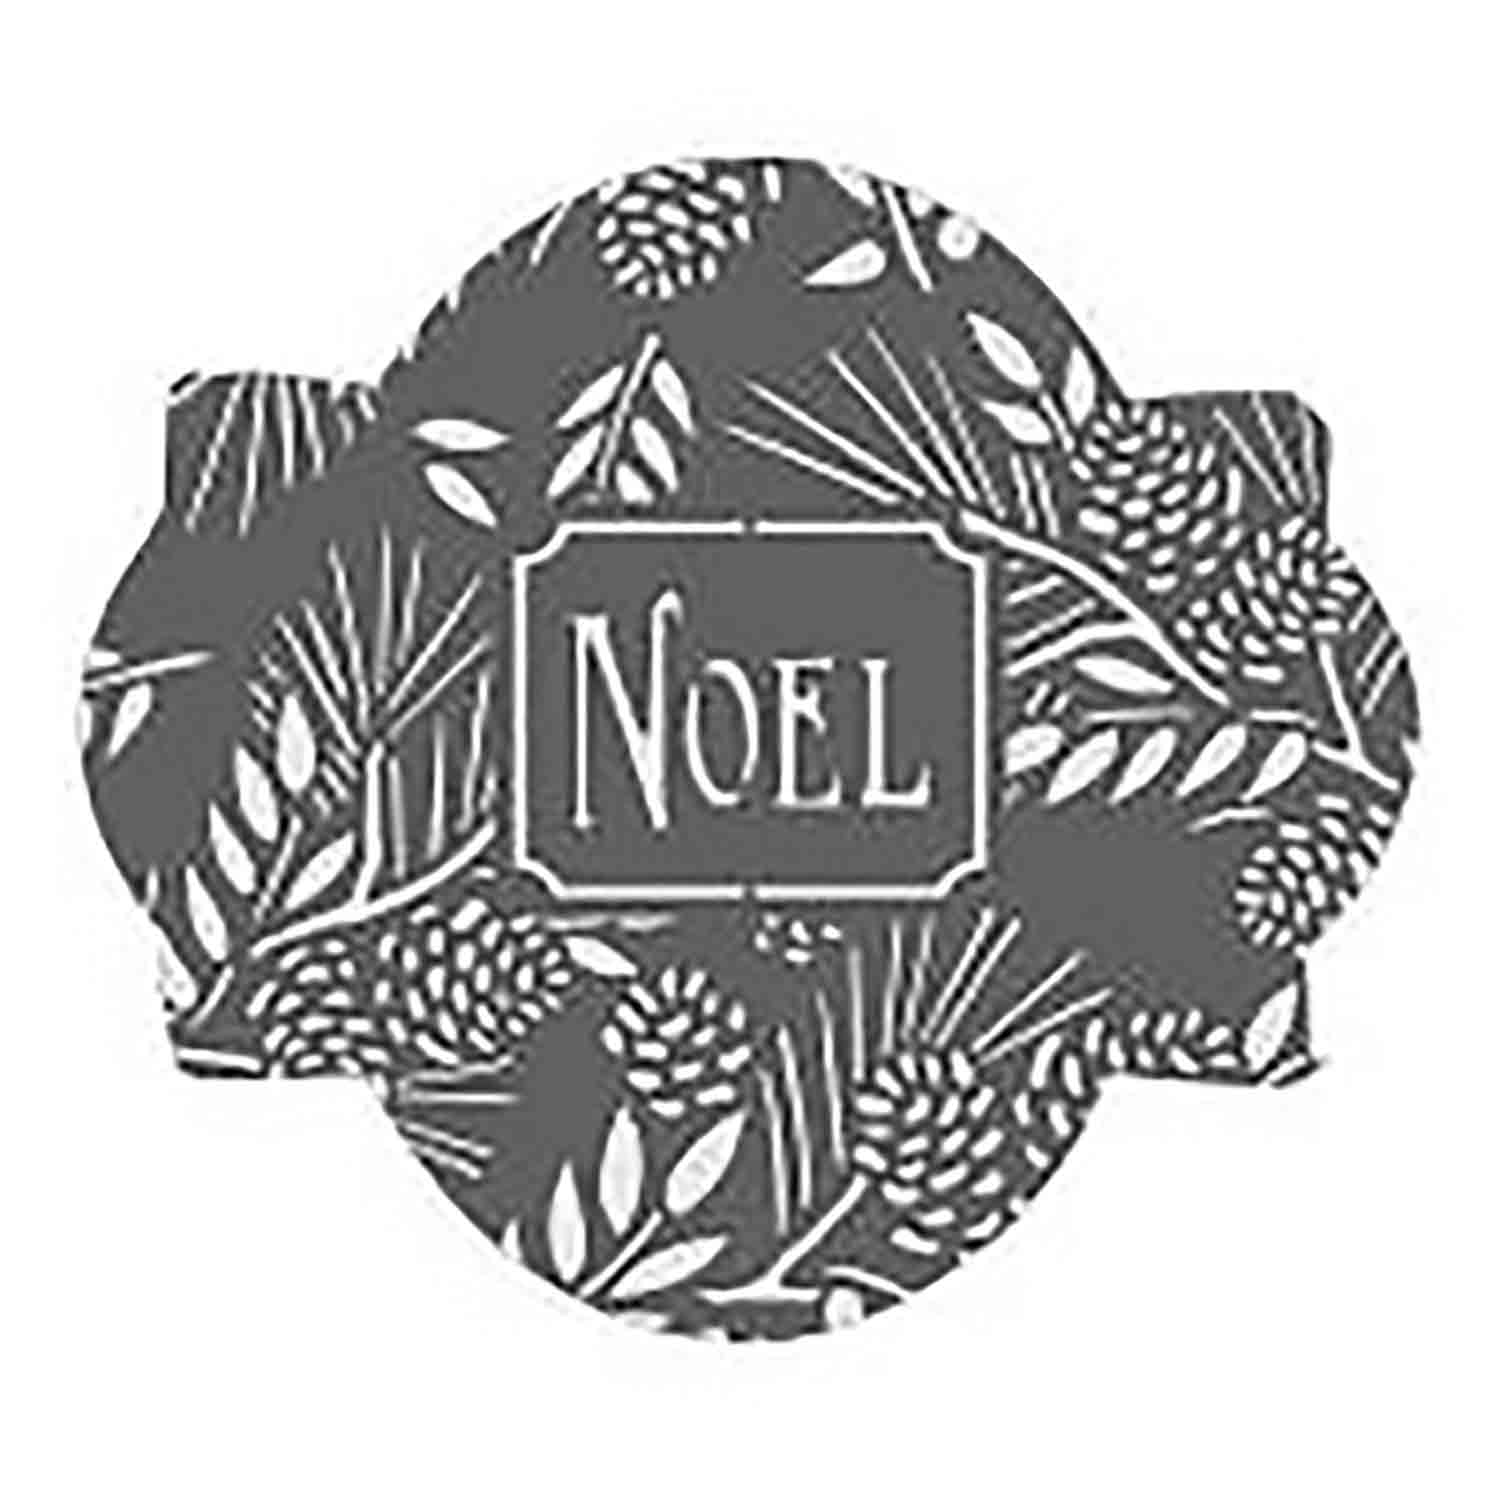 Noel Cookie Stencil Set by Julia M Usher